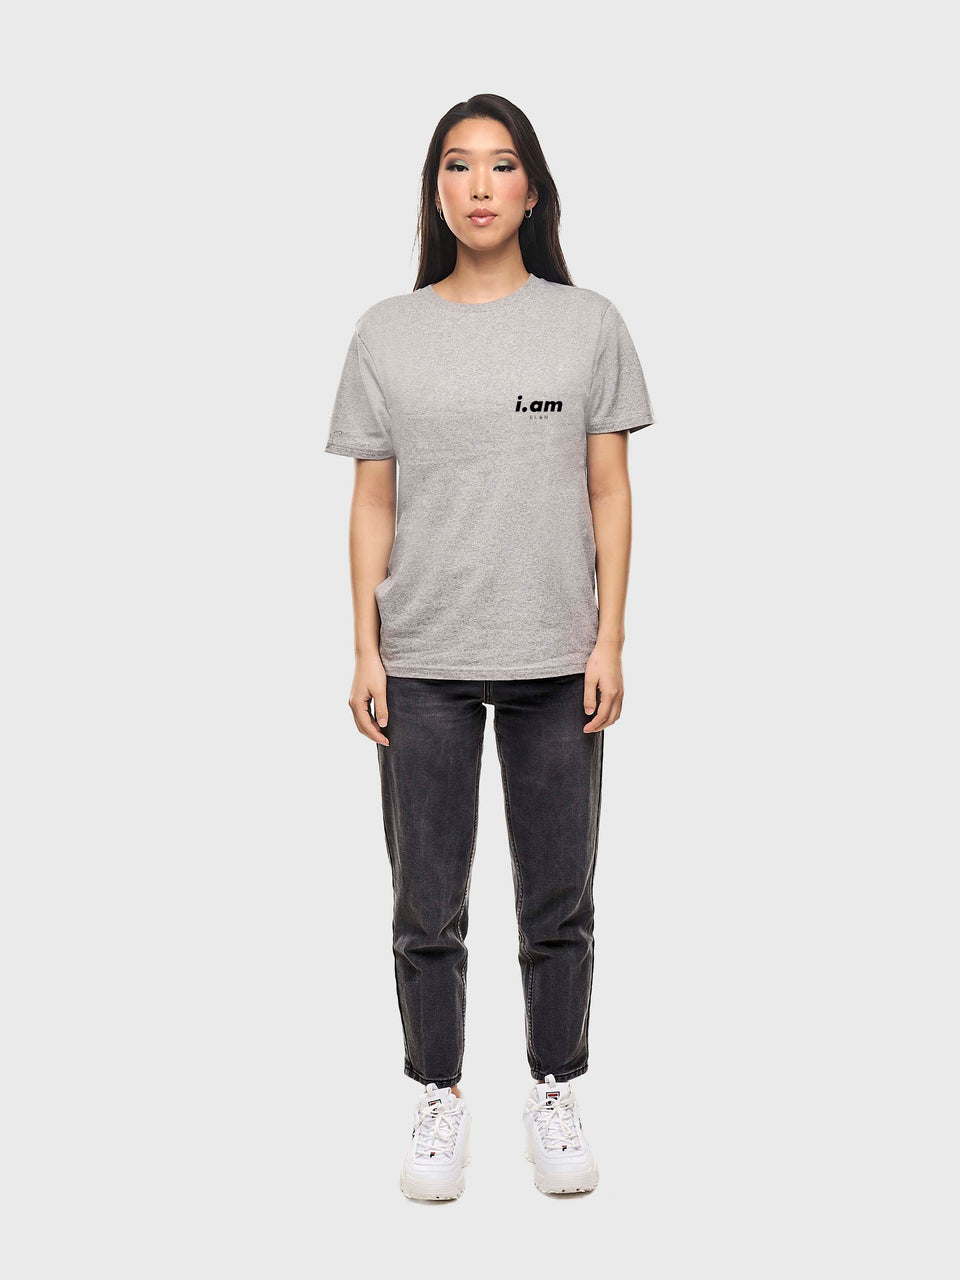 Showing not telling - White / Grey - Unisex T